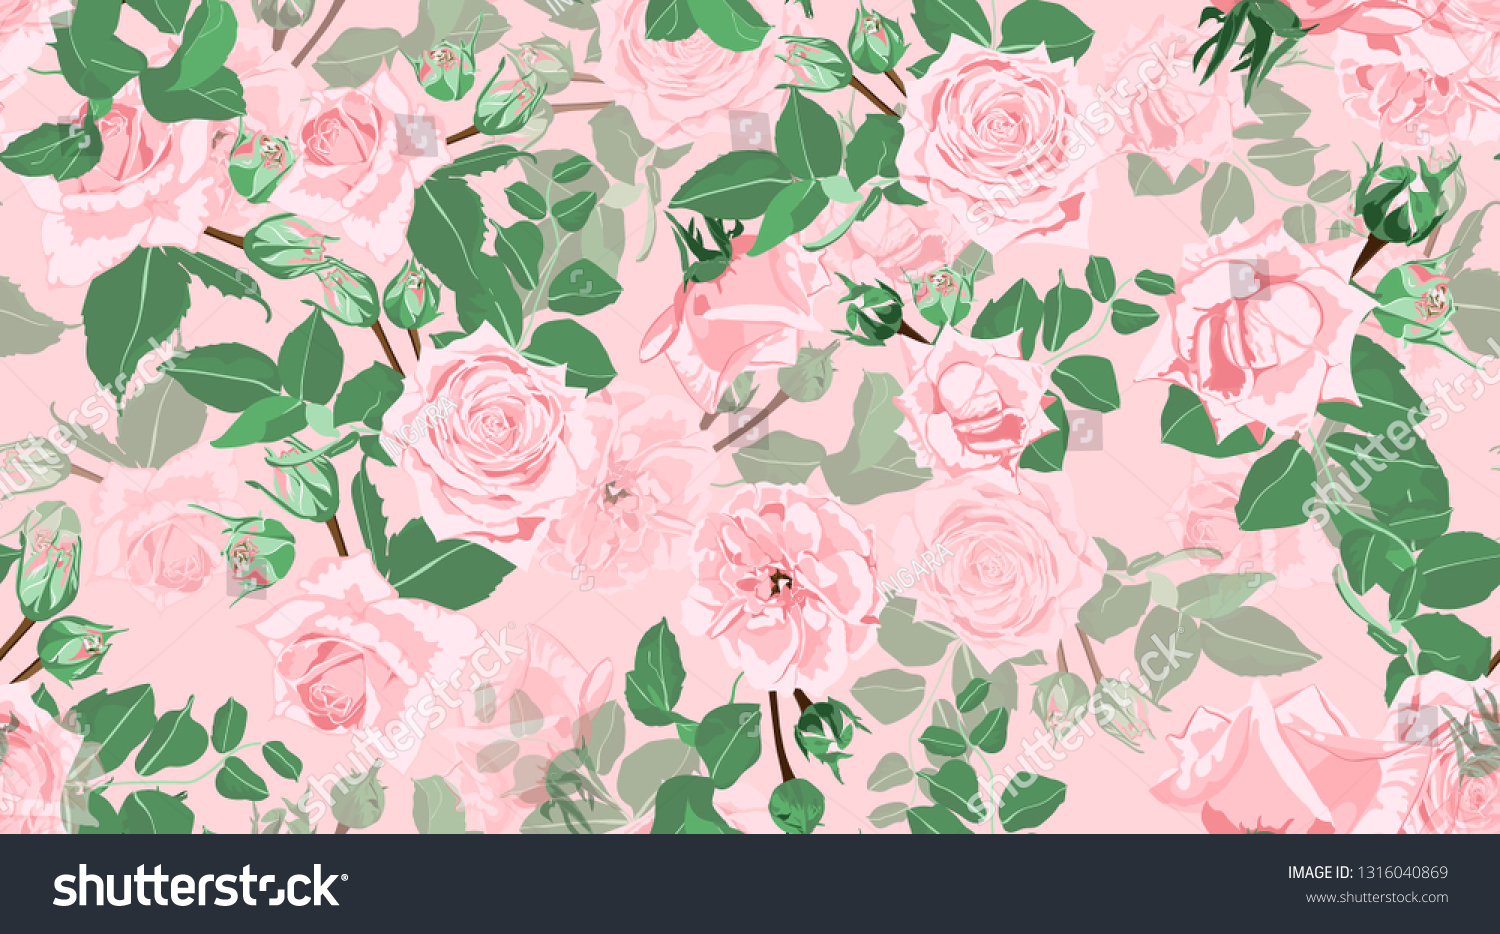 Wedding Pattern Roses Floral Background Vintage Royalty Free